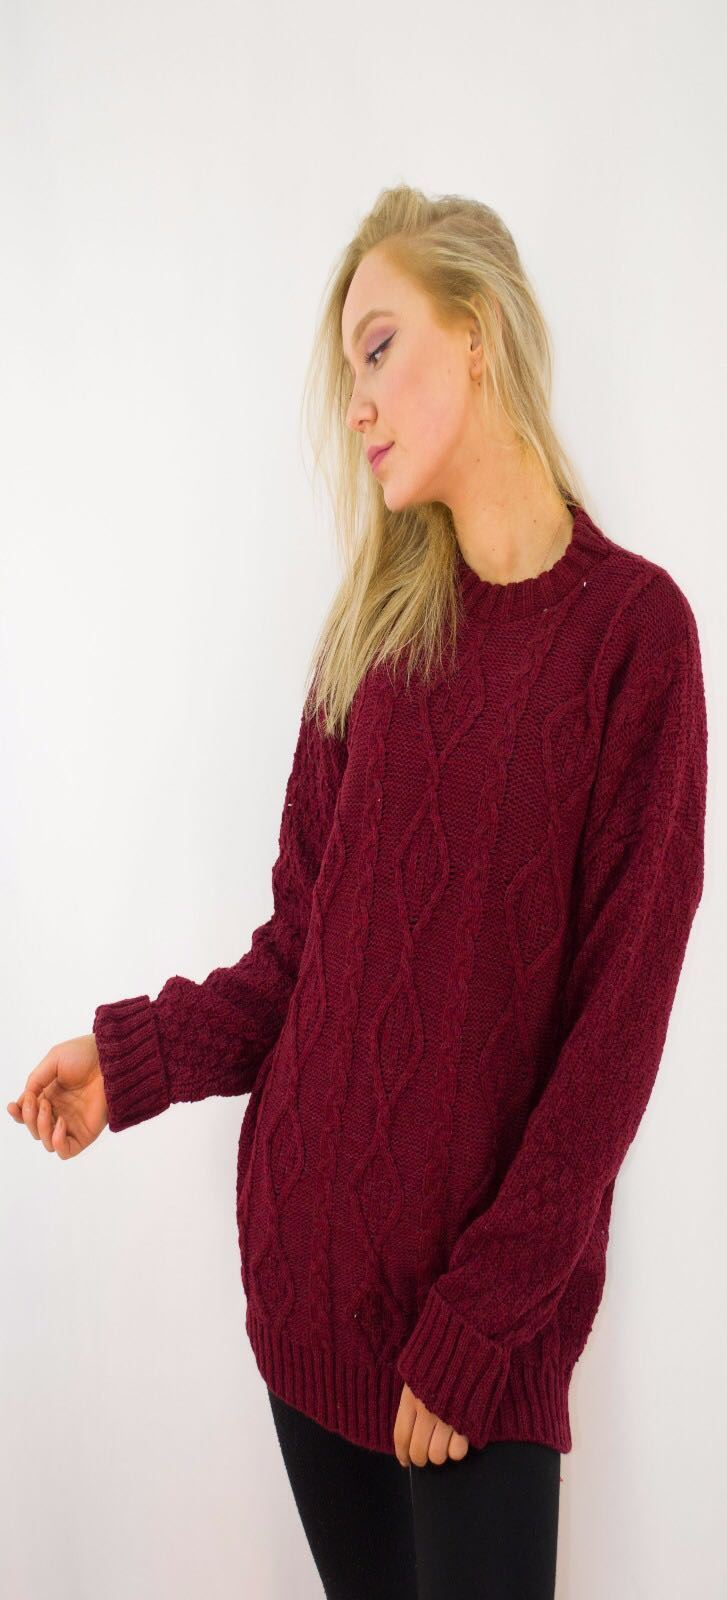 New-Ladies-Long-Manche-Chunky-Cable-Knitted-Jumper-crew-neck-hiver-Sweater-Top miniature 44